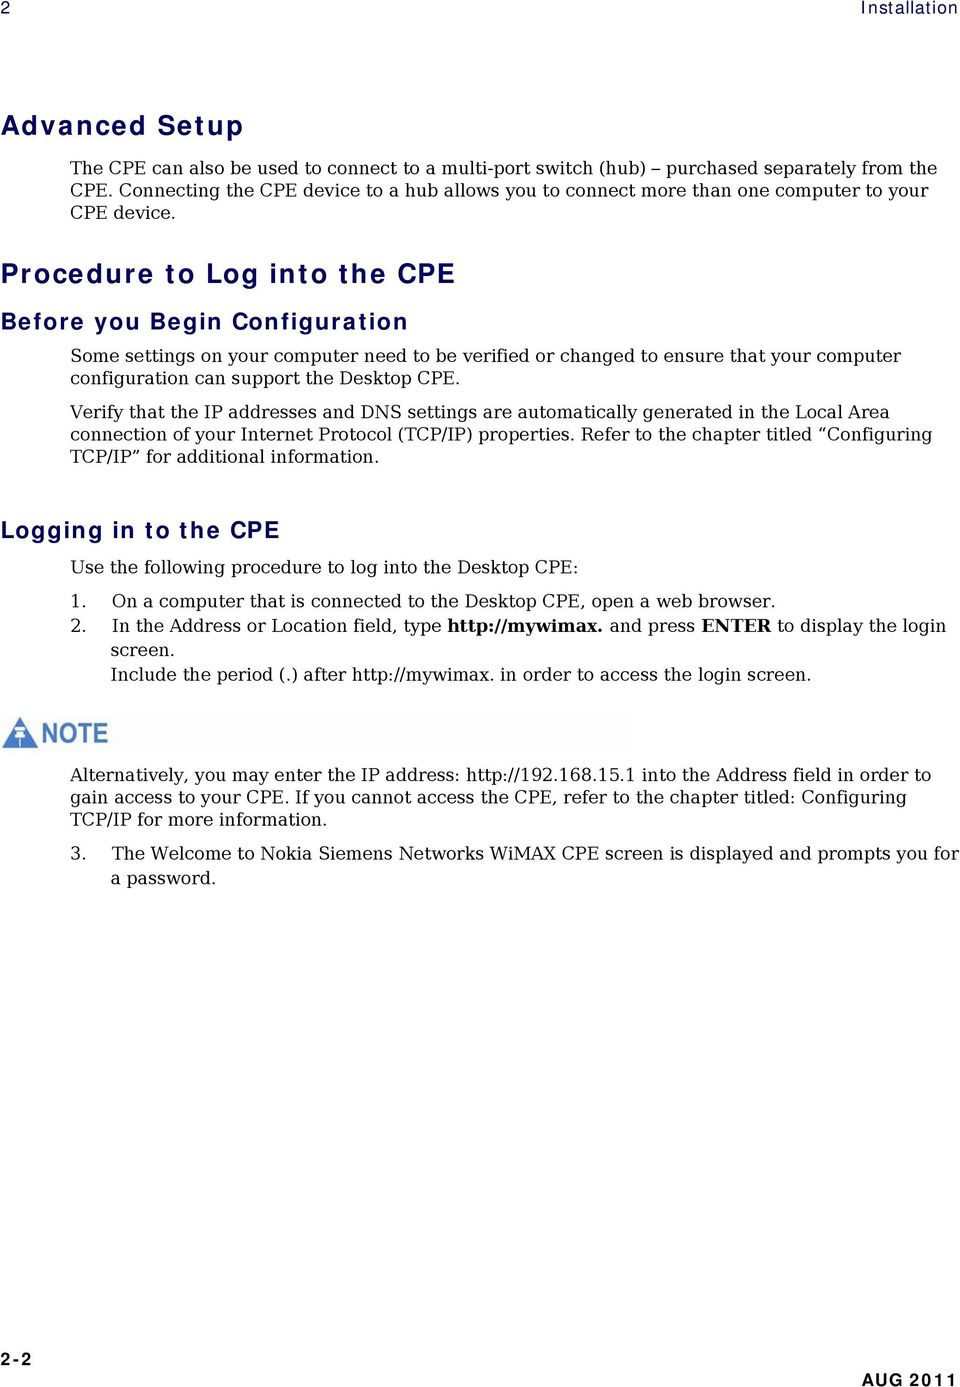 Procedure to Log into the CPE Before you Begin Configuration Some settings on your computer need to be verified or changed to ensure that your computer configuration can support the Desktop CPE.